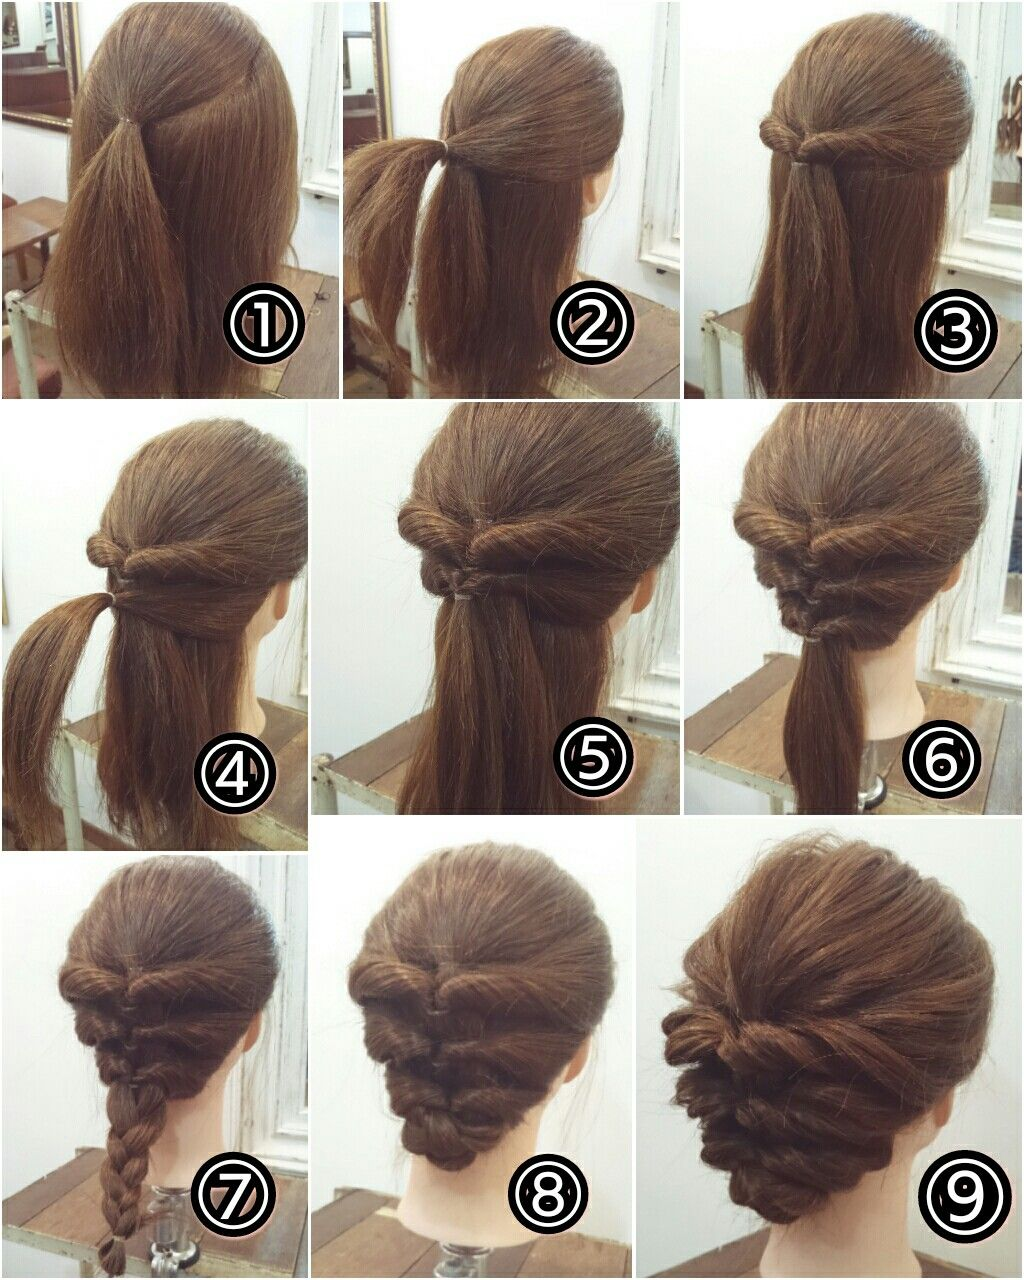 Easy Updo Hairstyles Pinamy L☺♥♫ On Hair & Stuff  Pinterest  Hair Style Updos